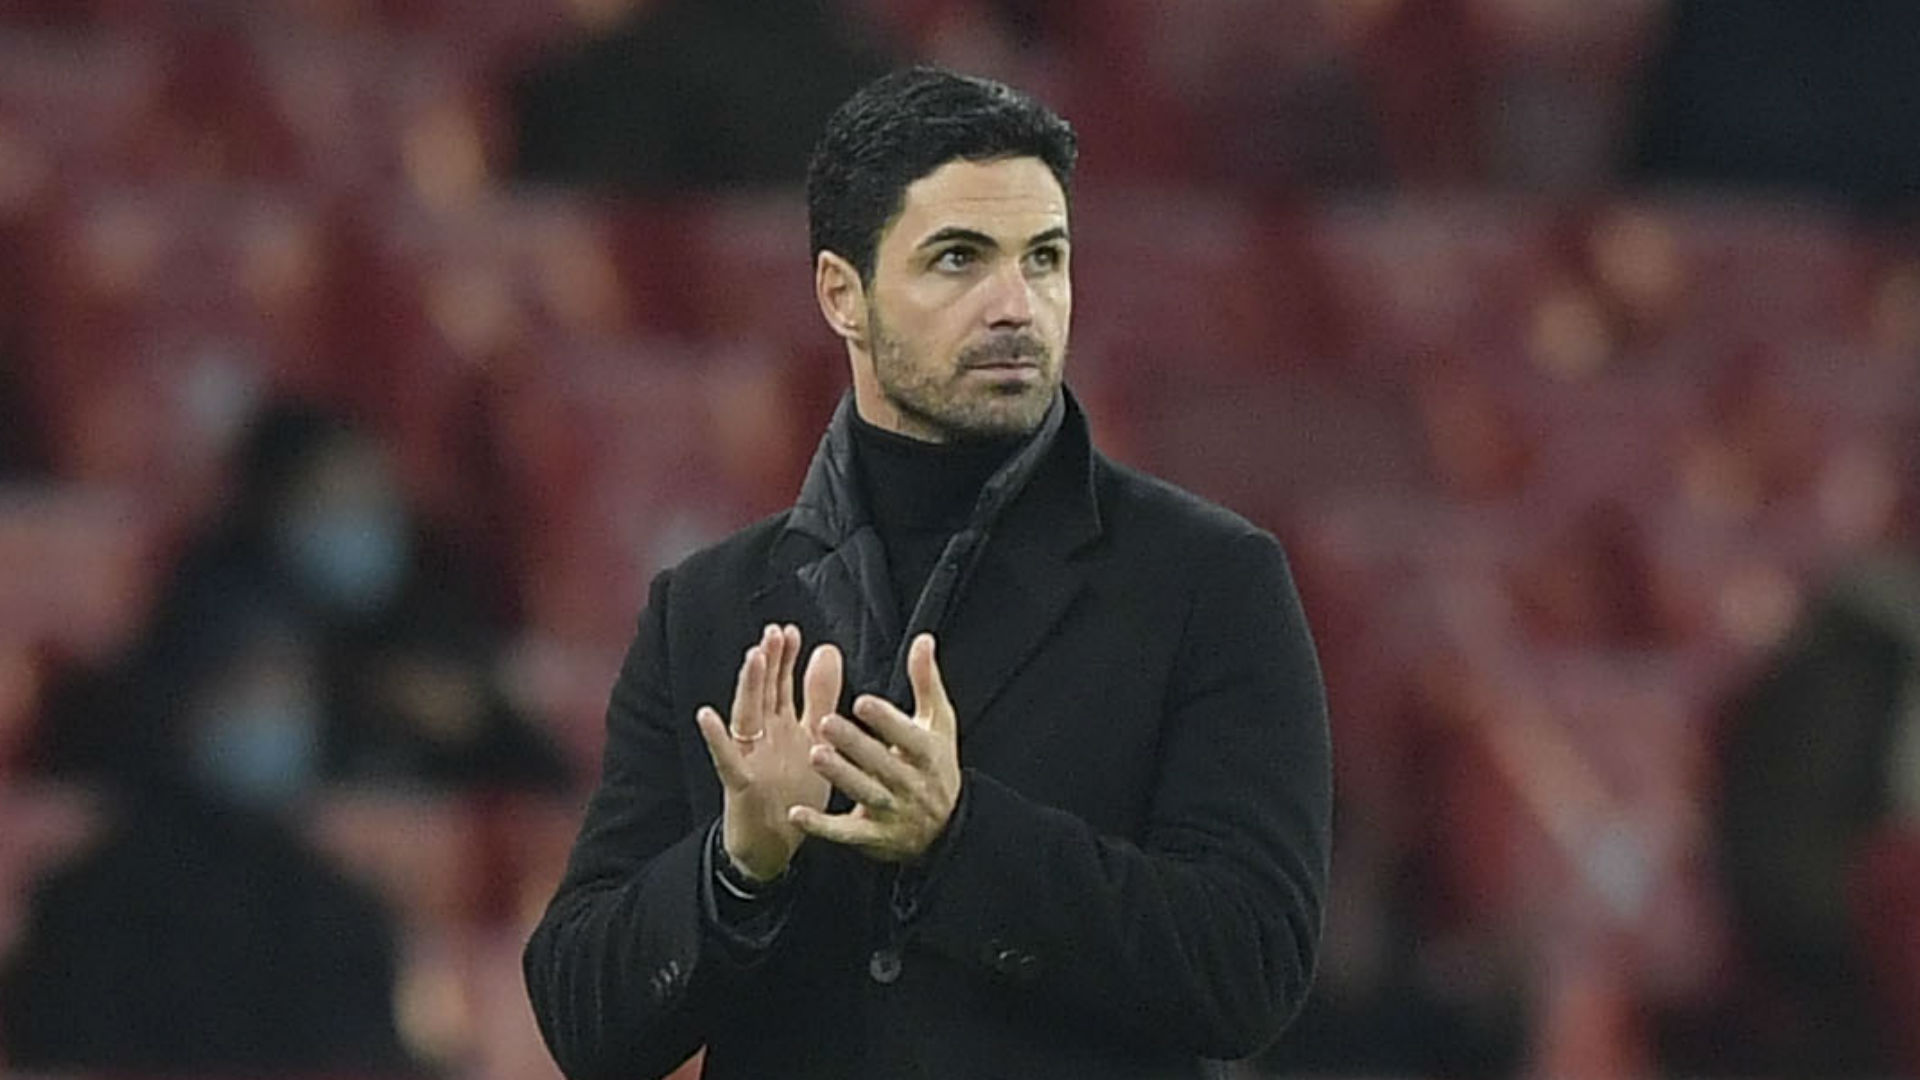 Arteta insists he feels Arsenal support despite 'one of the most challenging years in the club's history'